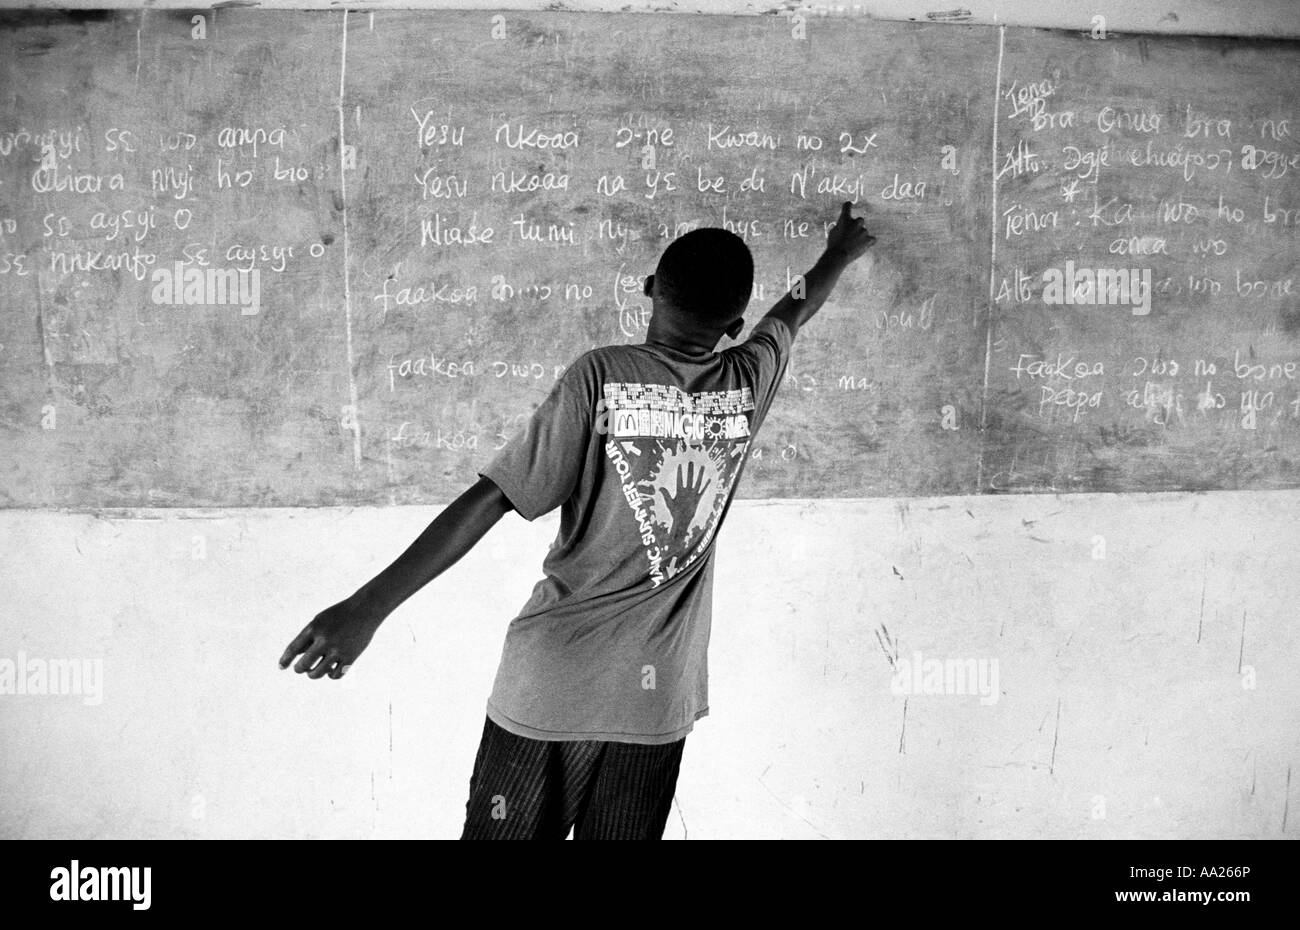 Reading from the blackboard at community school near Accra, Ghana - Stock Image